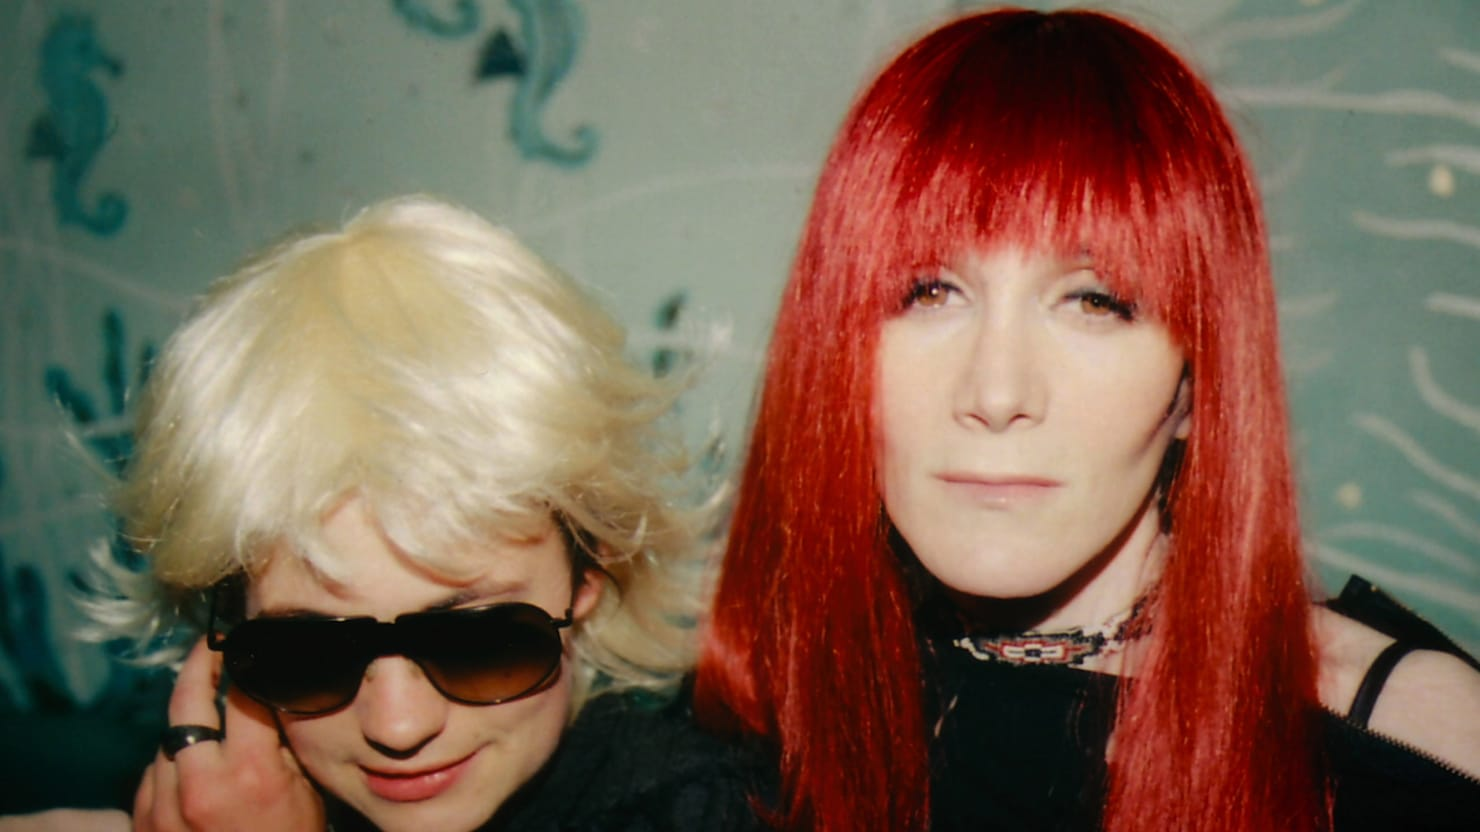 The Strange Saga of JT LeRoy: Inside the Literary Hoax That Fooled the Stars